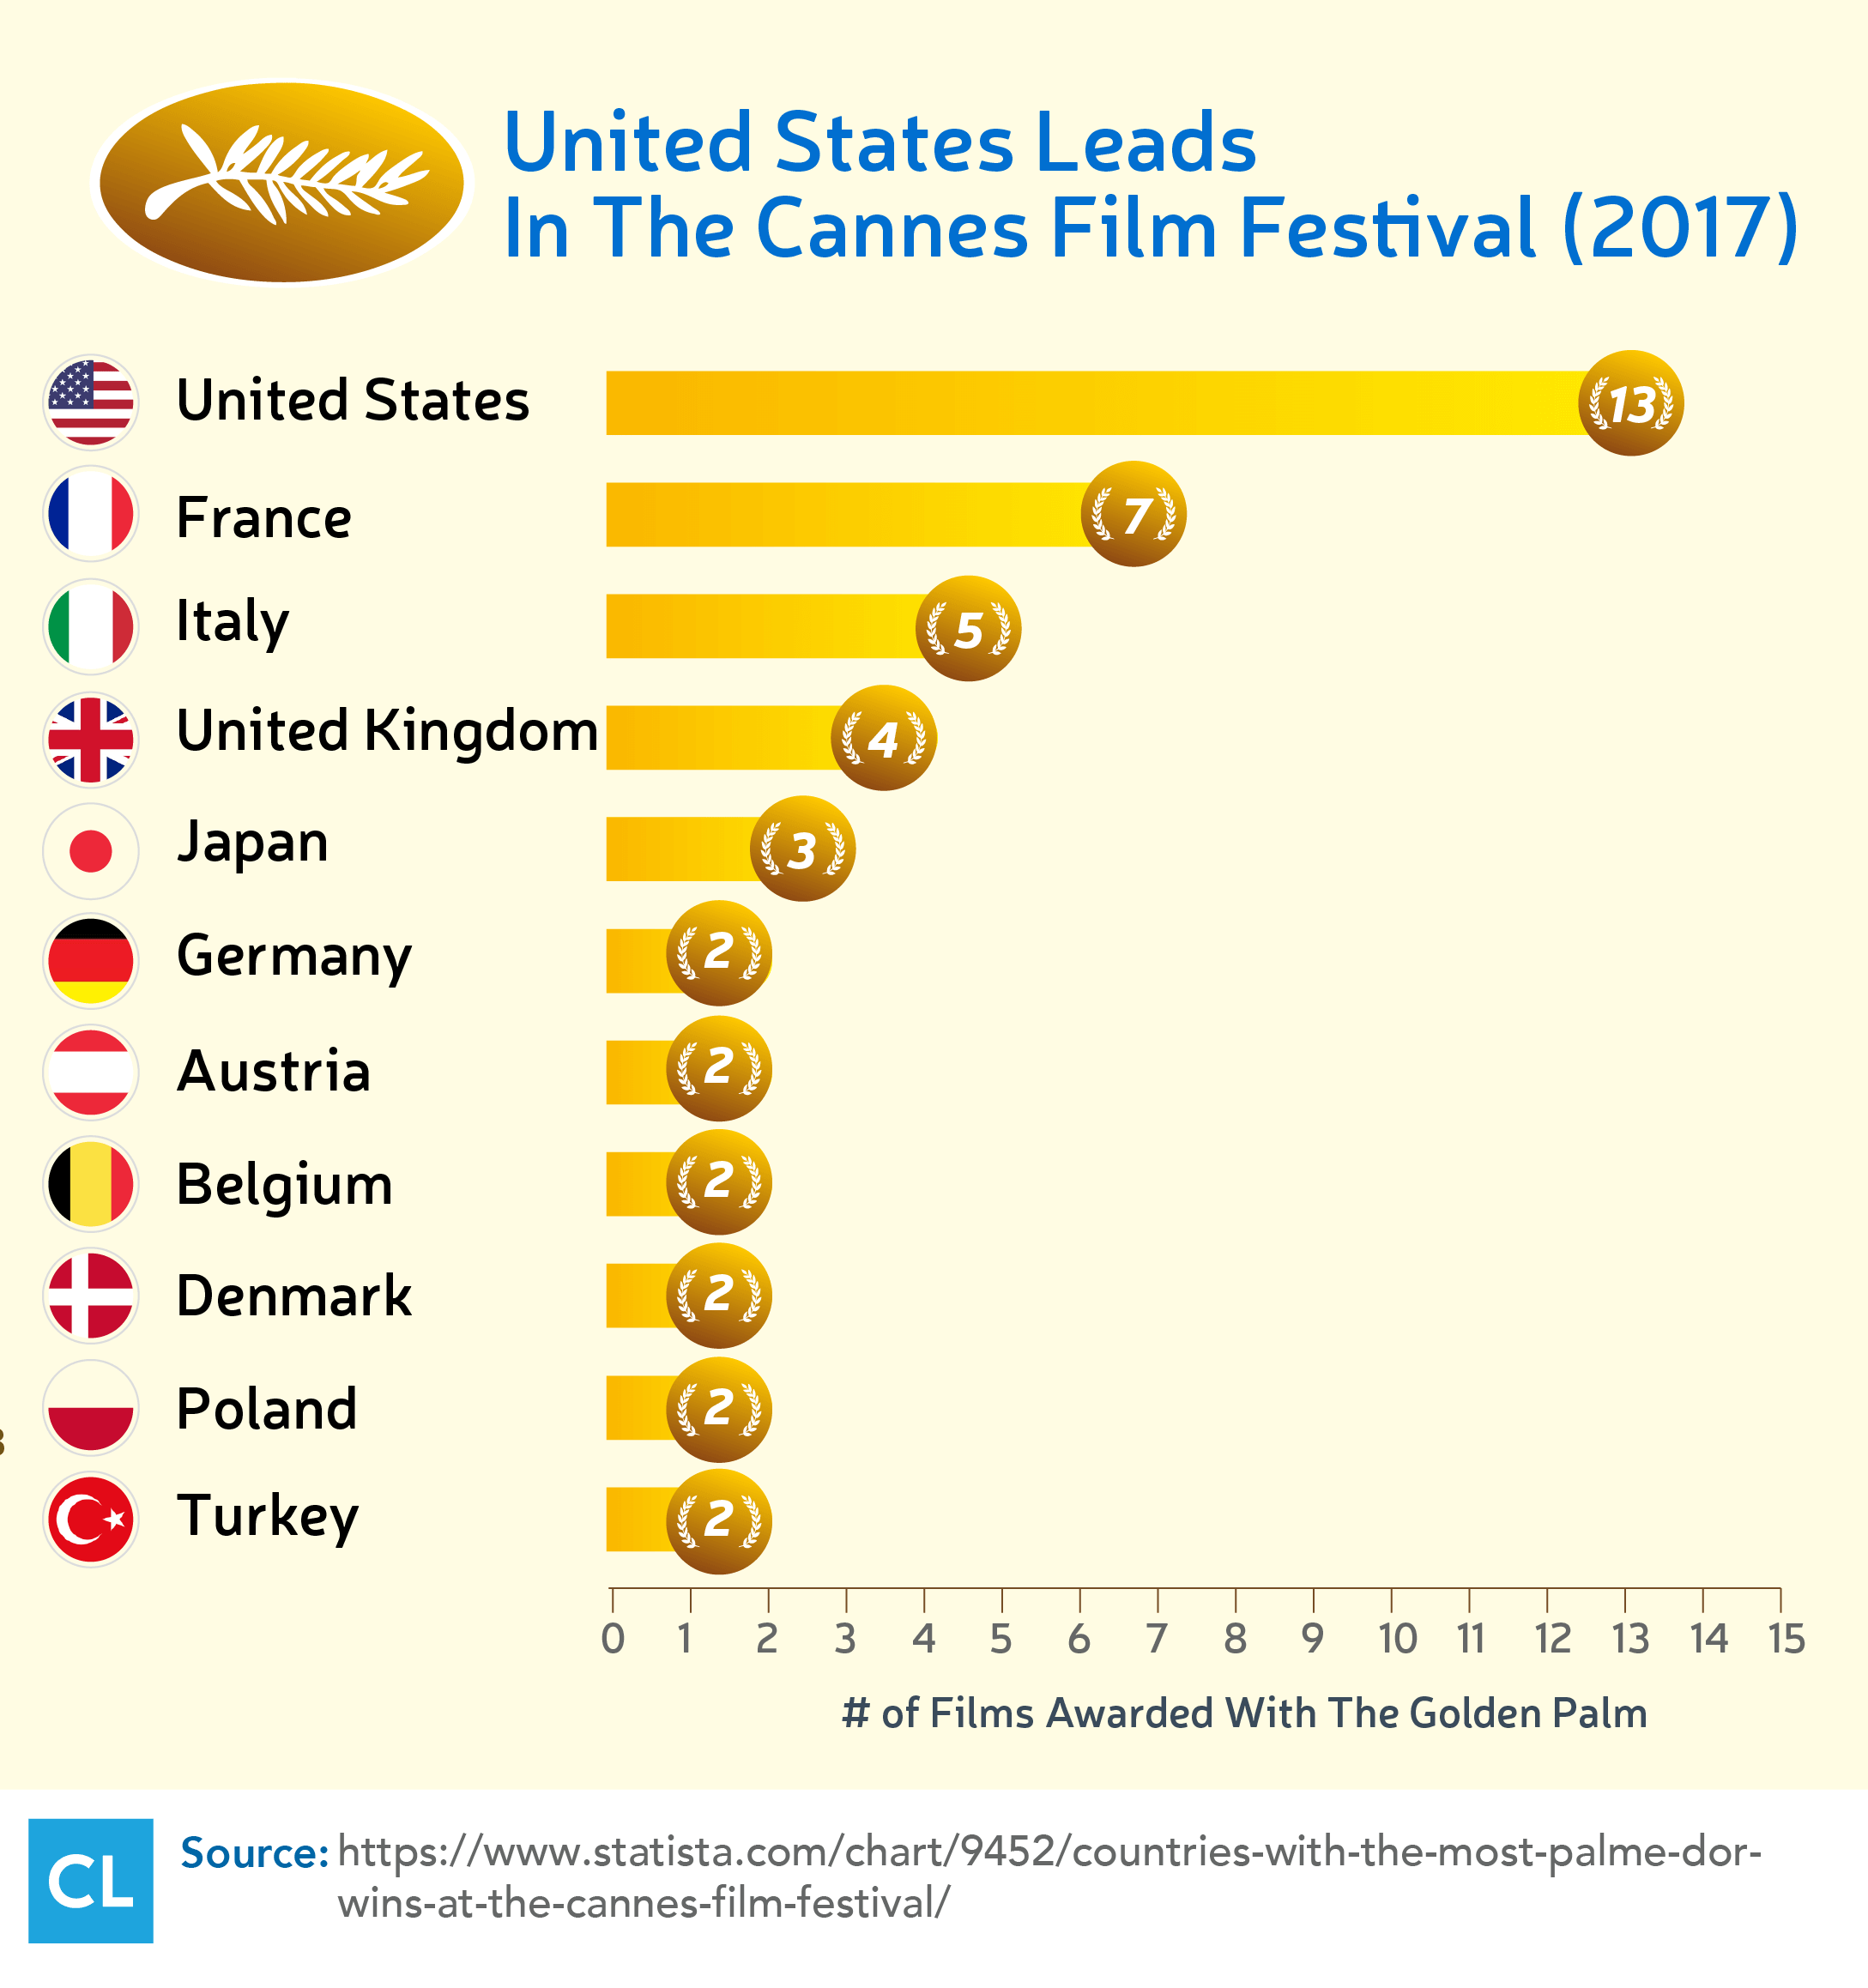 United States Leads In The Cannes Film Festival